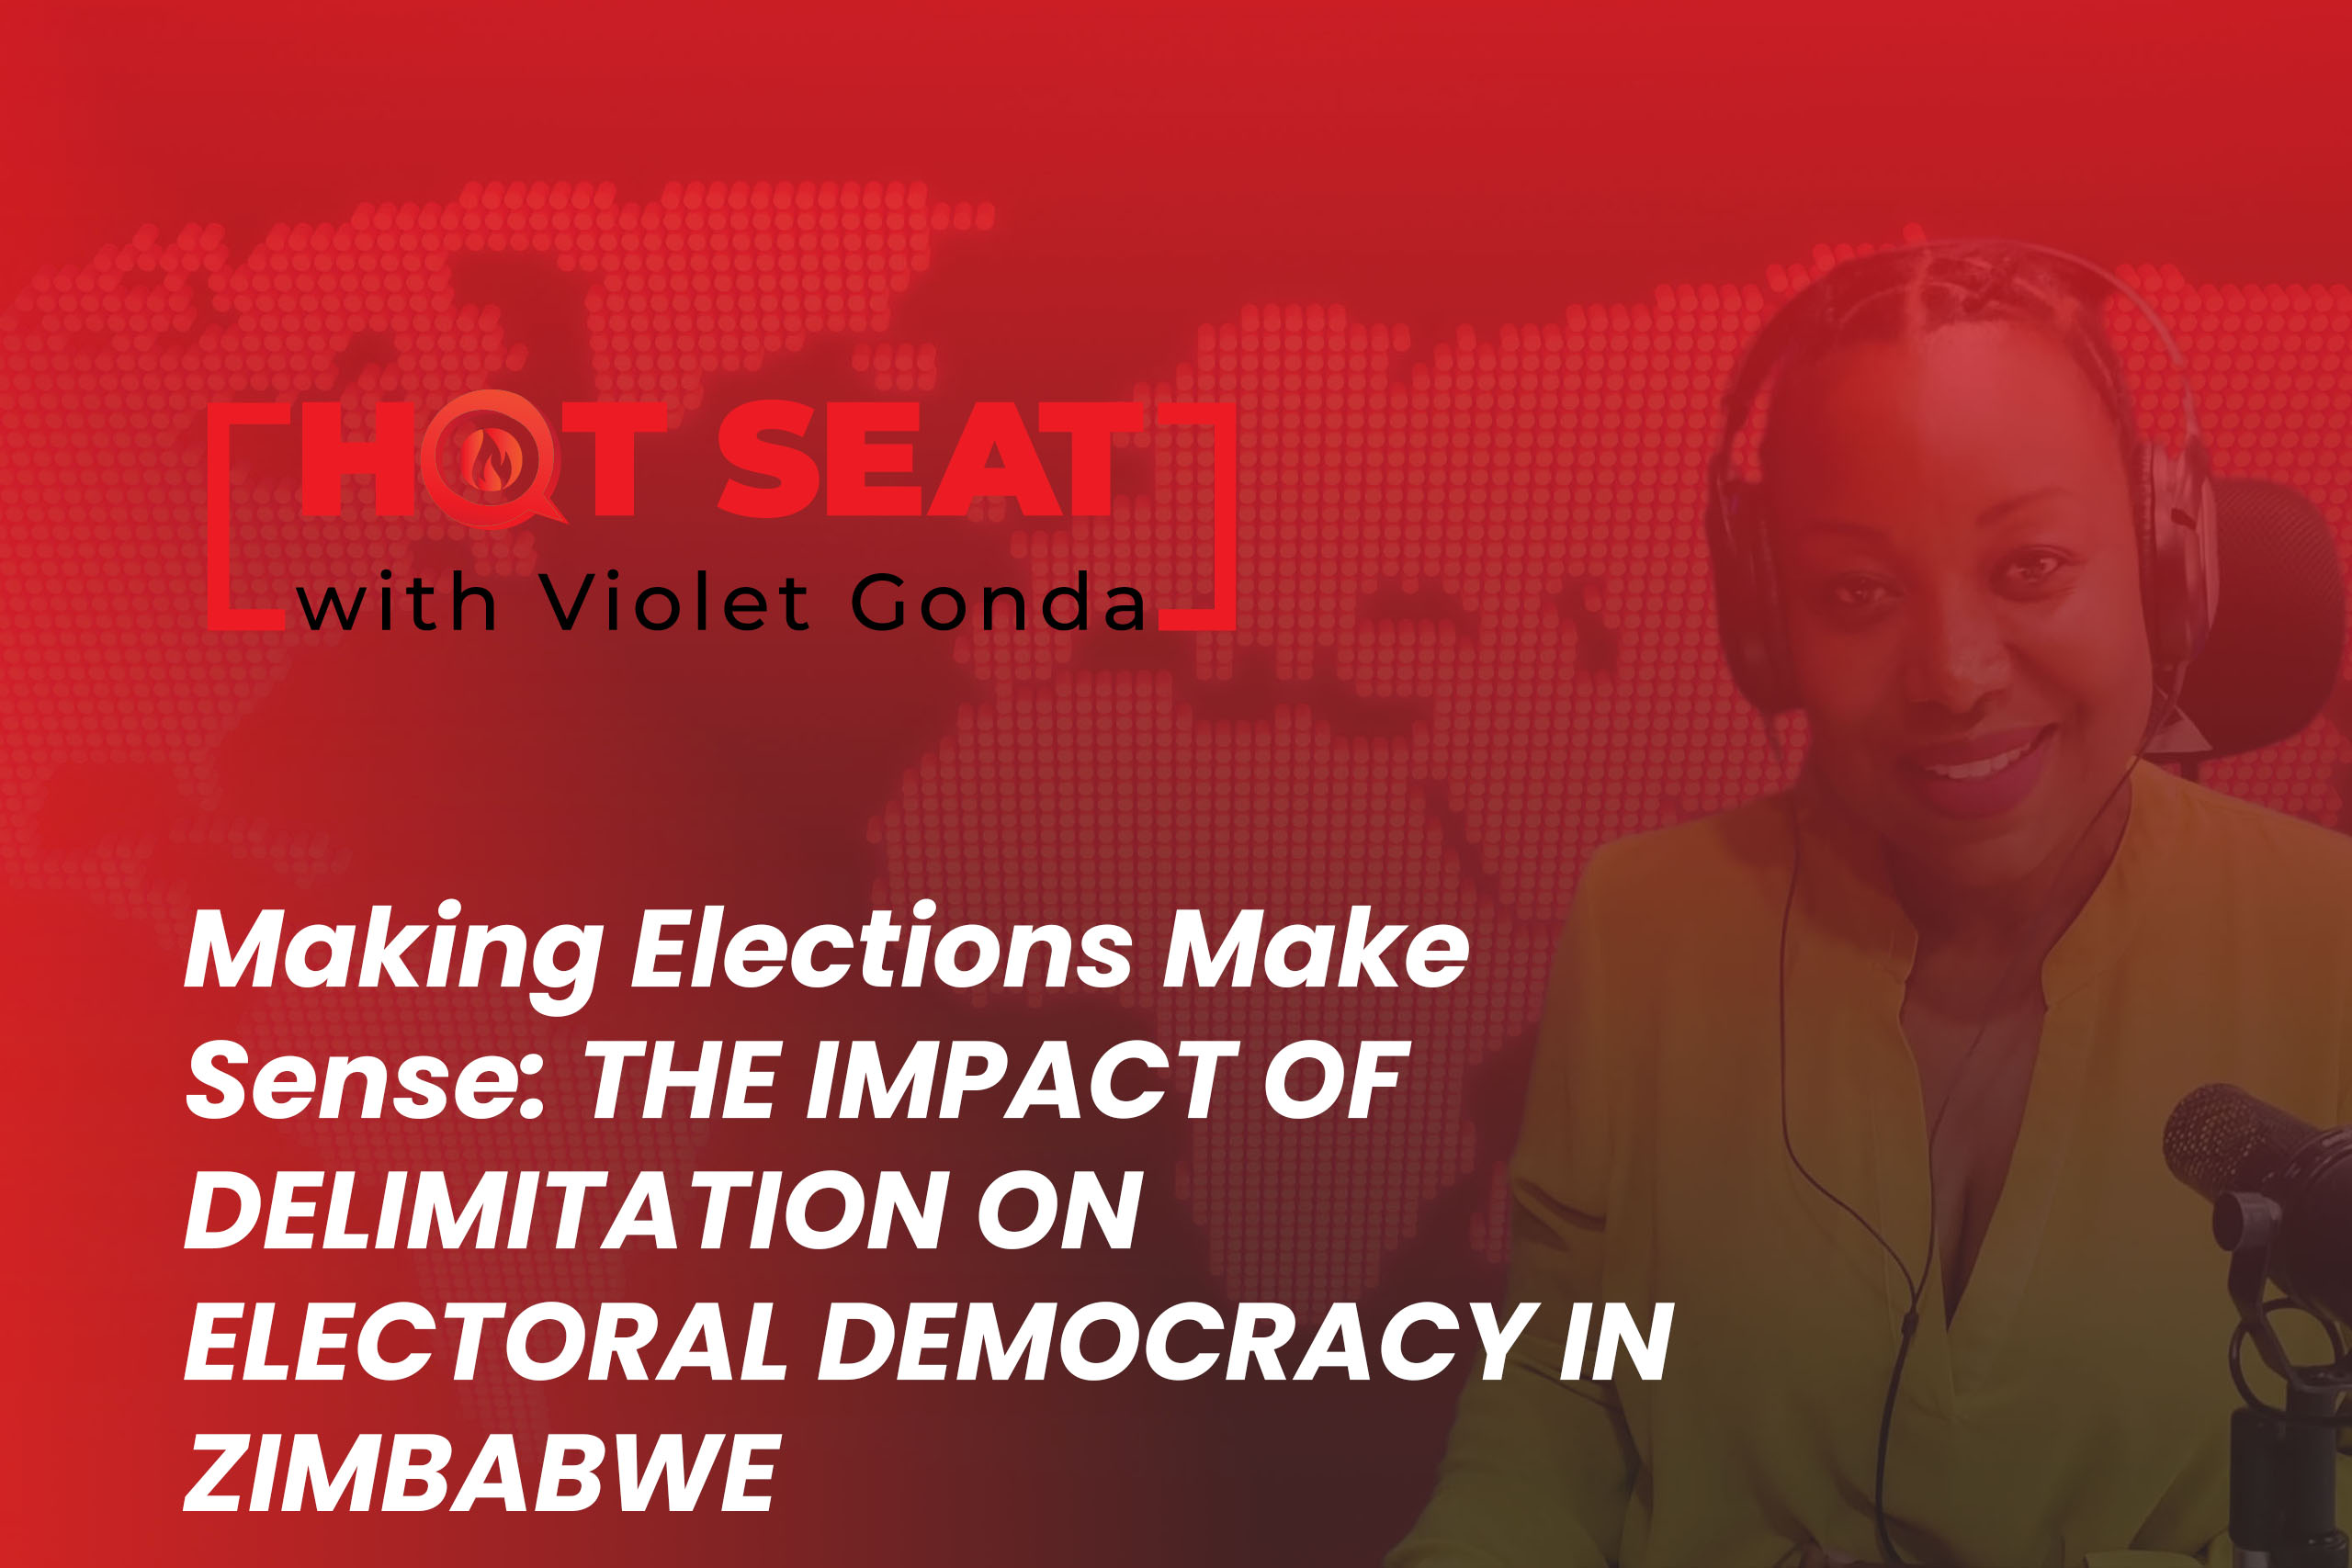 Making Elections Make Sense- THE IMPACT OF DELIMITATION ON ELECTORAL DEMOCRACY IN ZIMBABWE